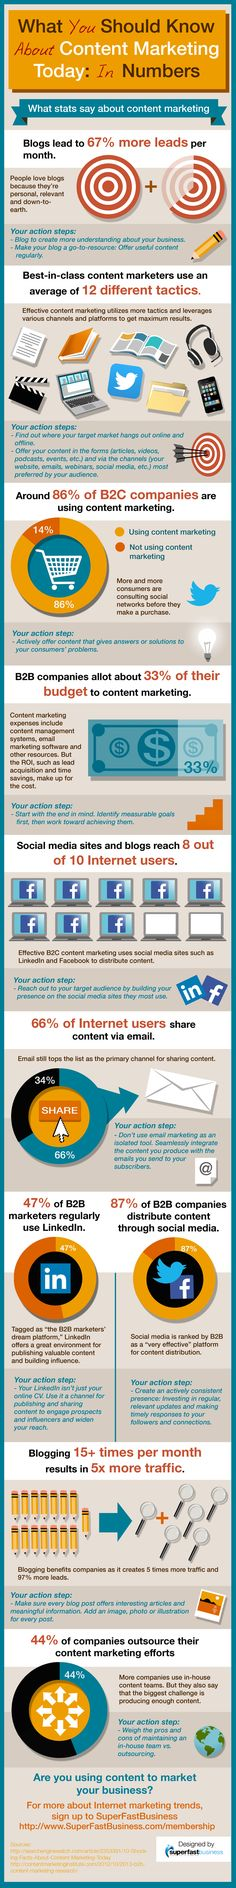 What You Should Know about Content Marketing Today #contentmarketing #infographic